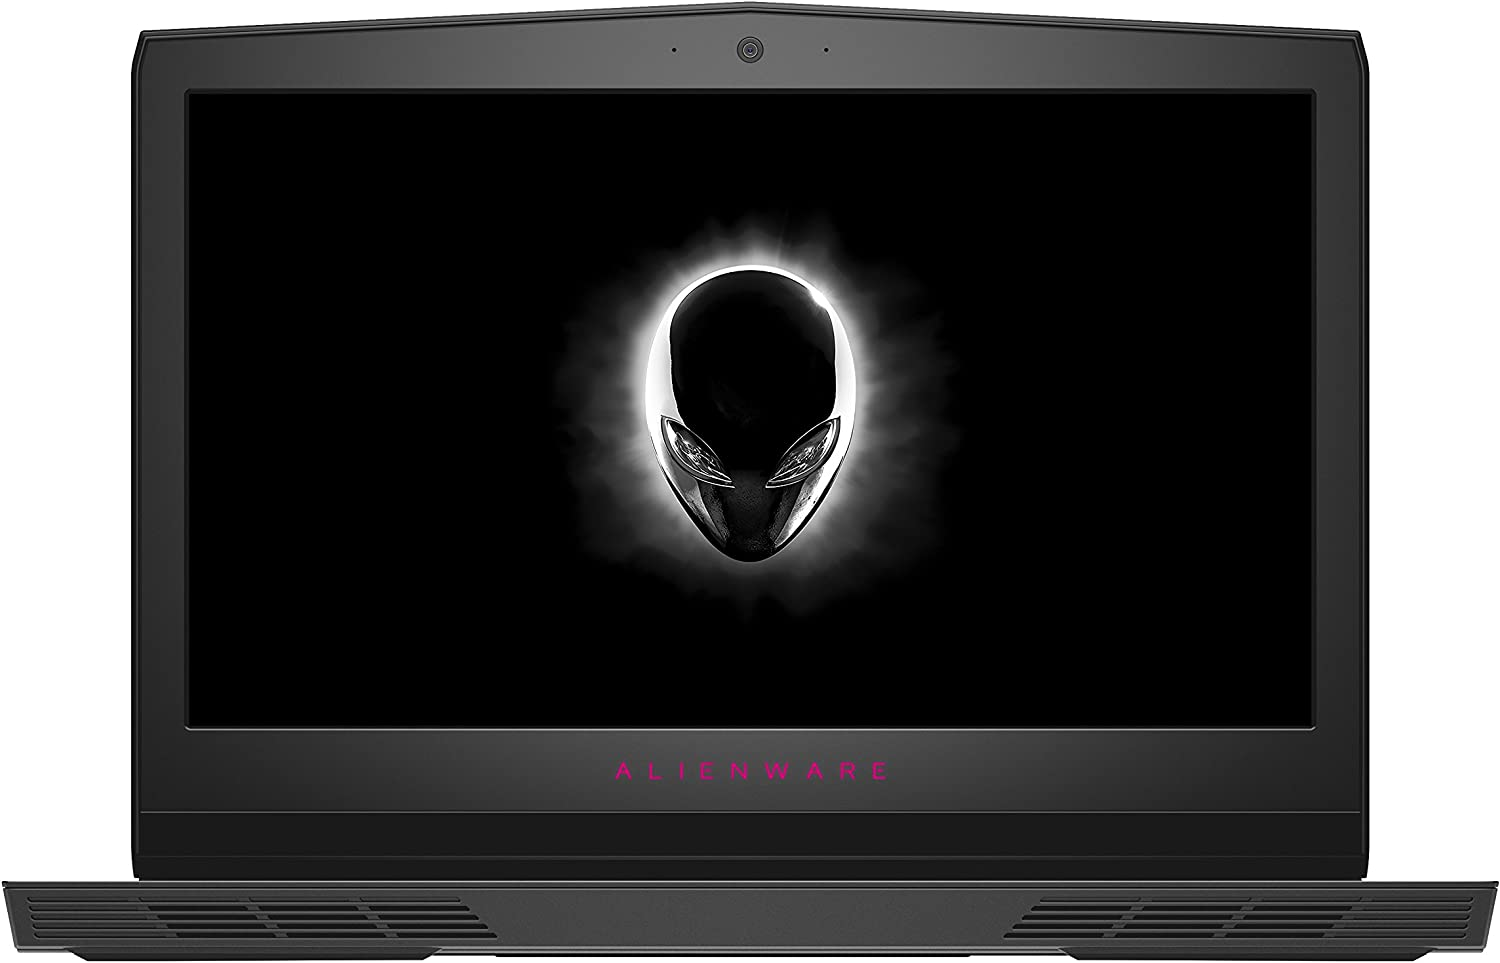 Alienware AW17R4-7005SLV-PUS 17in Laptop (7th Generation Intel Core i7, 16GB RAM, 1TB HDD, Silver) with NVIDIA GTX 1060 (Renewed)